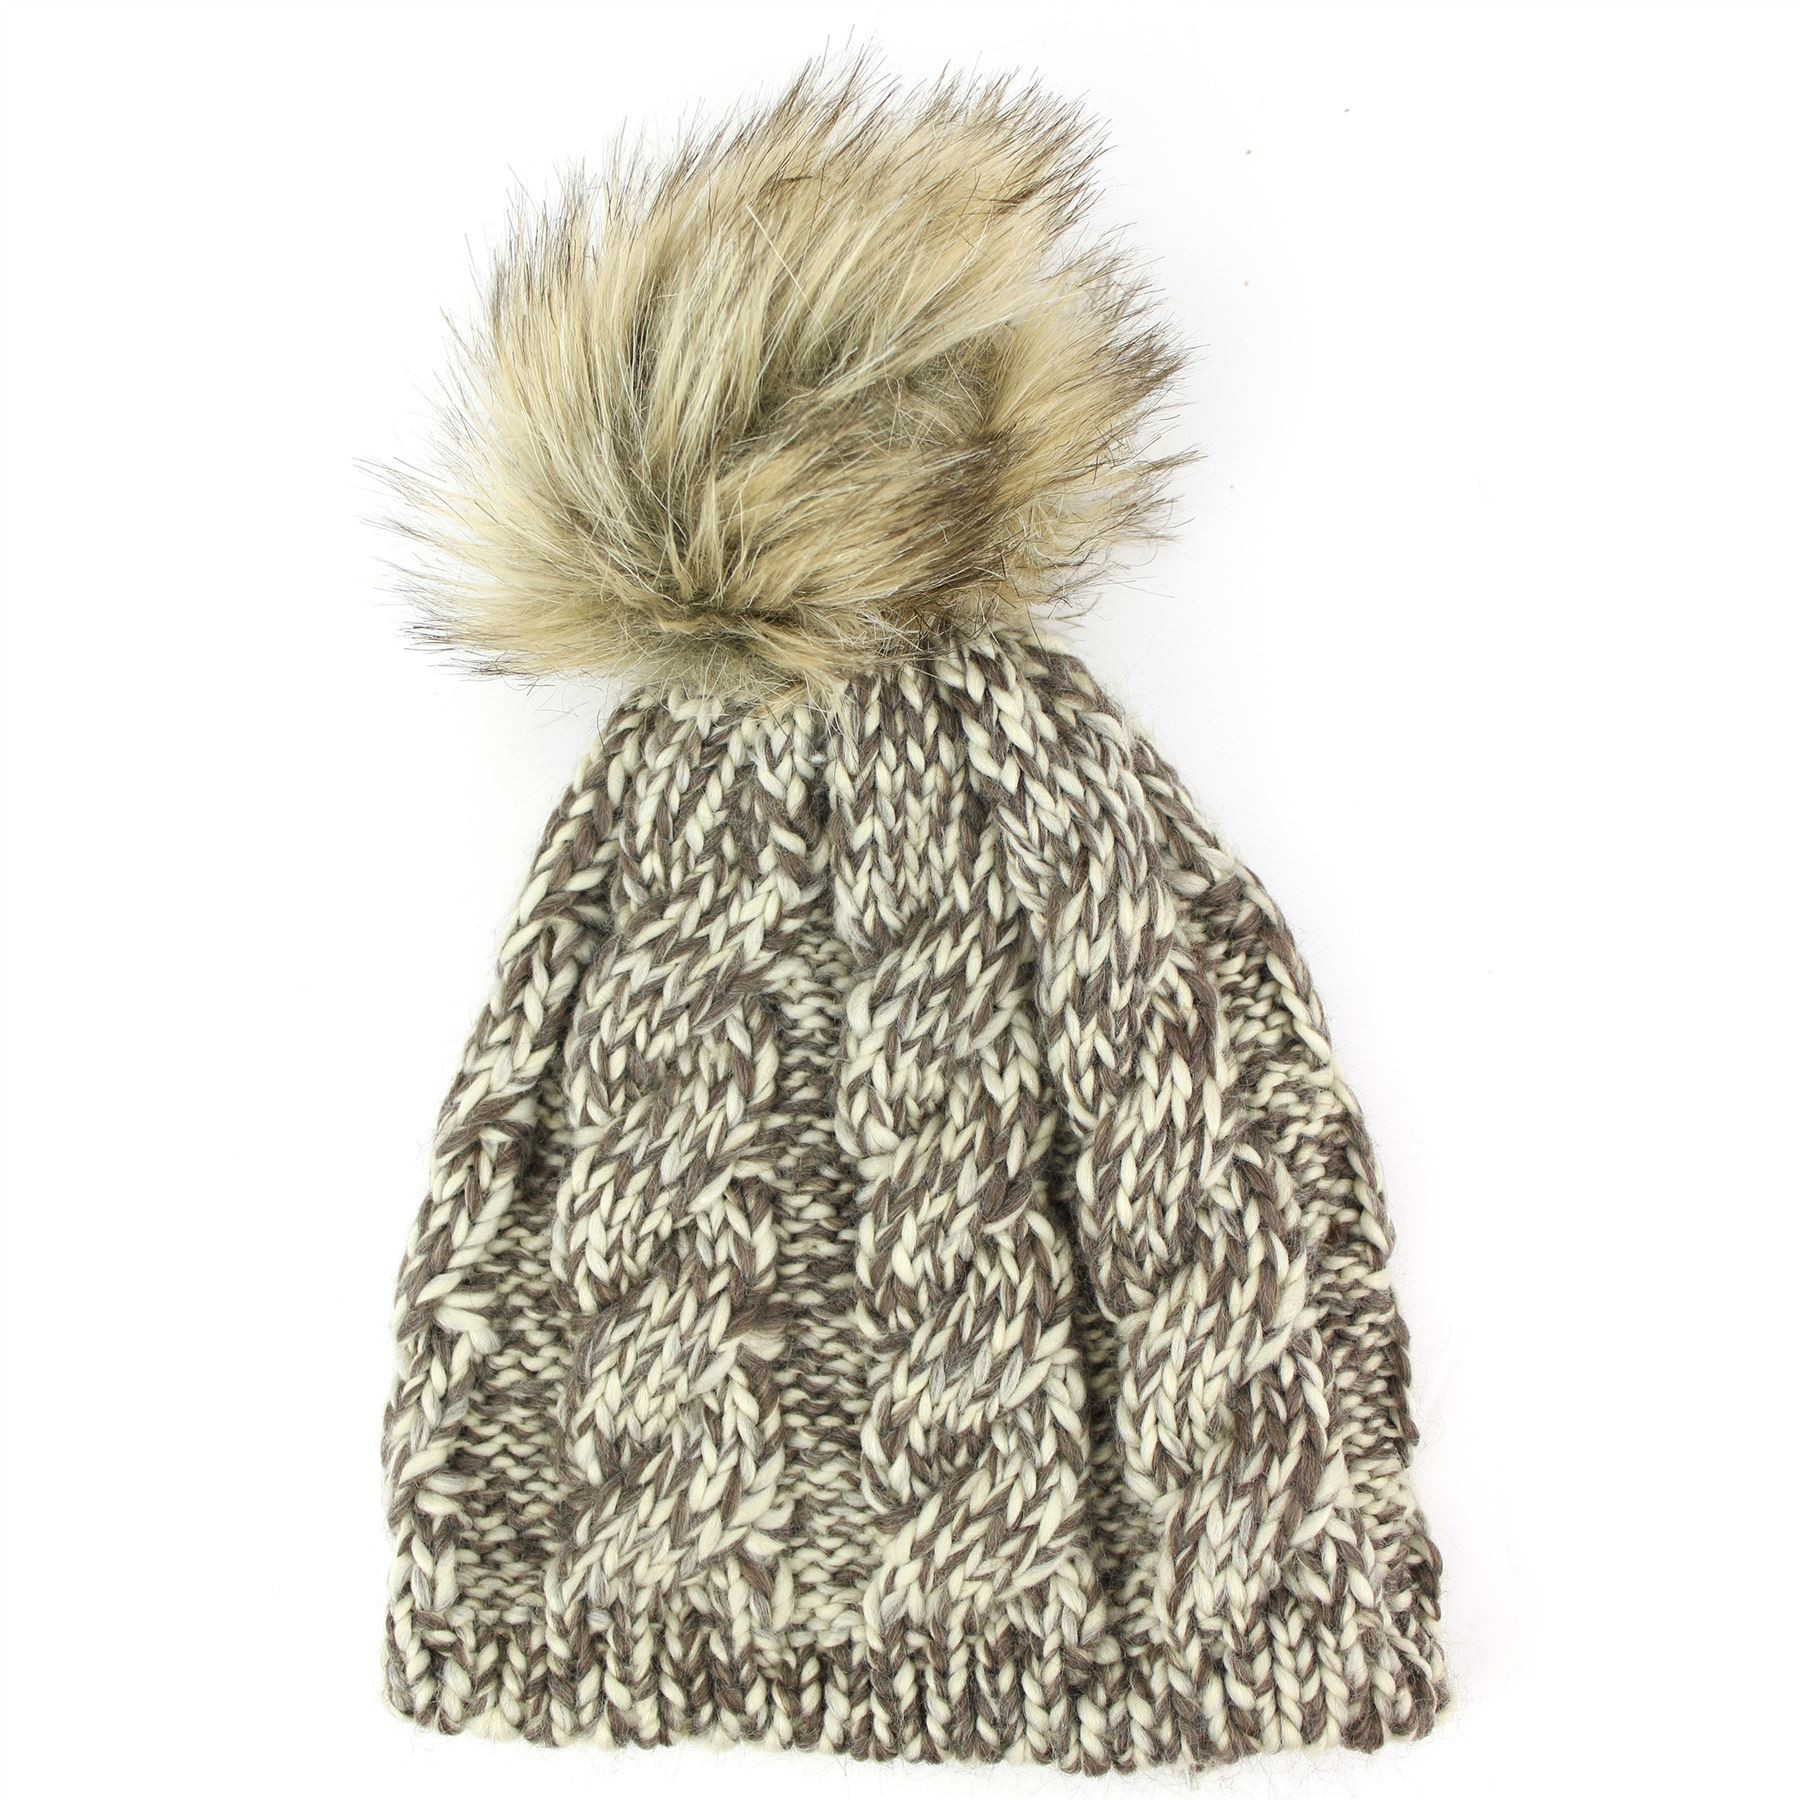 Awesome Chunky Hat Knit Beanie La S Knitted Winter Pom Bobble Chunky Knit Hat Of Delightful 46 Pictures Chunky Knit Hat